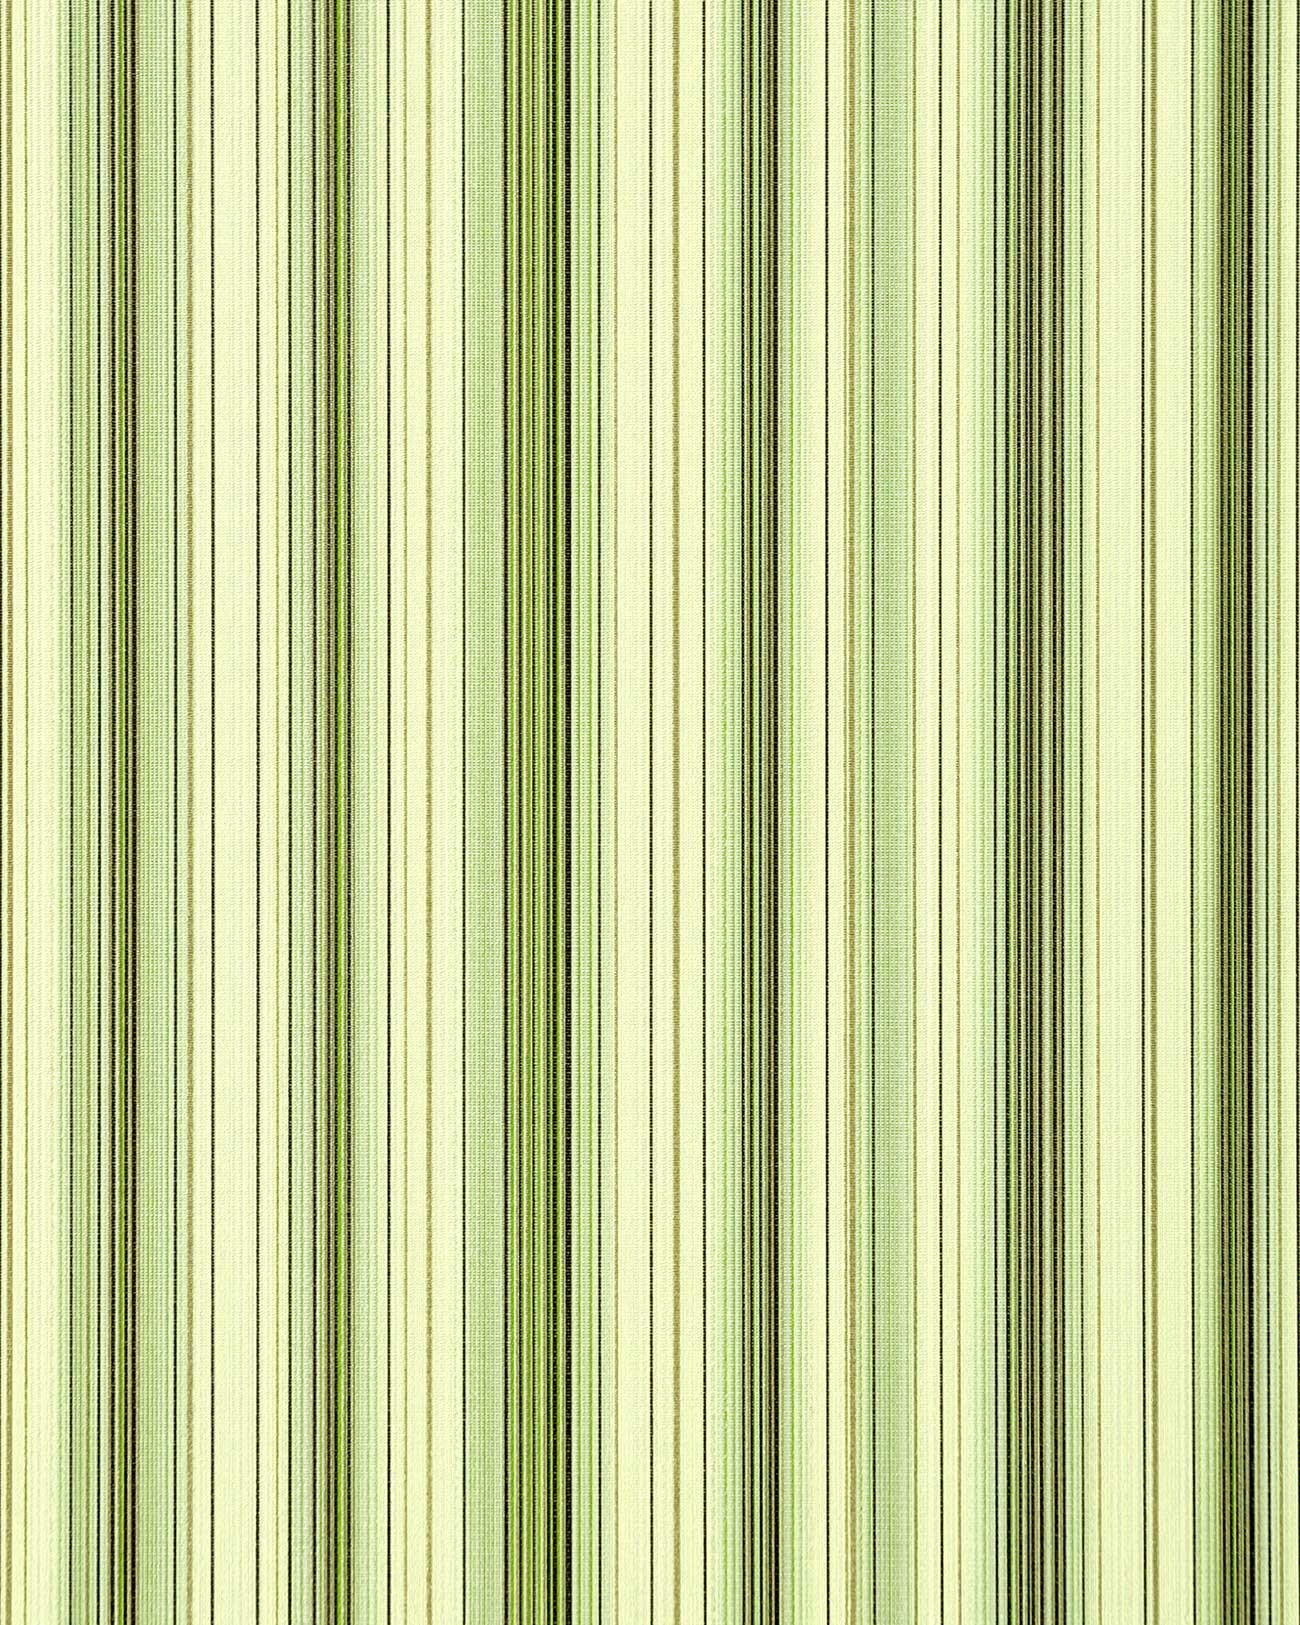 Vinyl wallpaper wall stripes EDEM 097-25 sumptuous stripes modern and ...: www.profhome.eu/en/wallpaper-wallcoverings/stripes-striped...